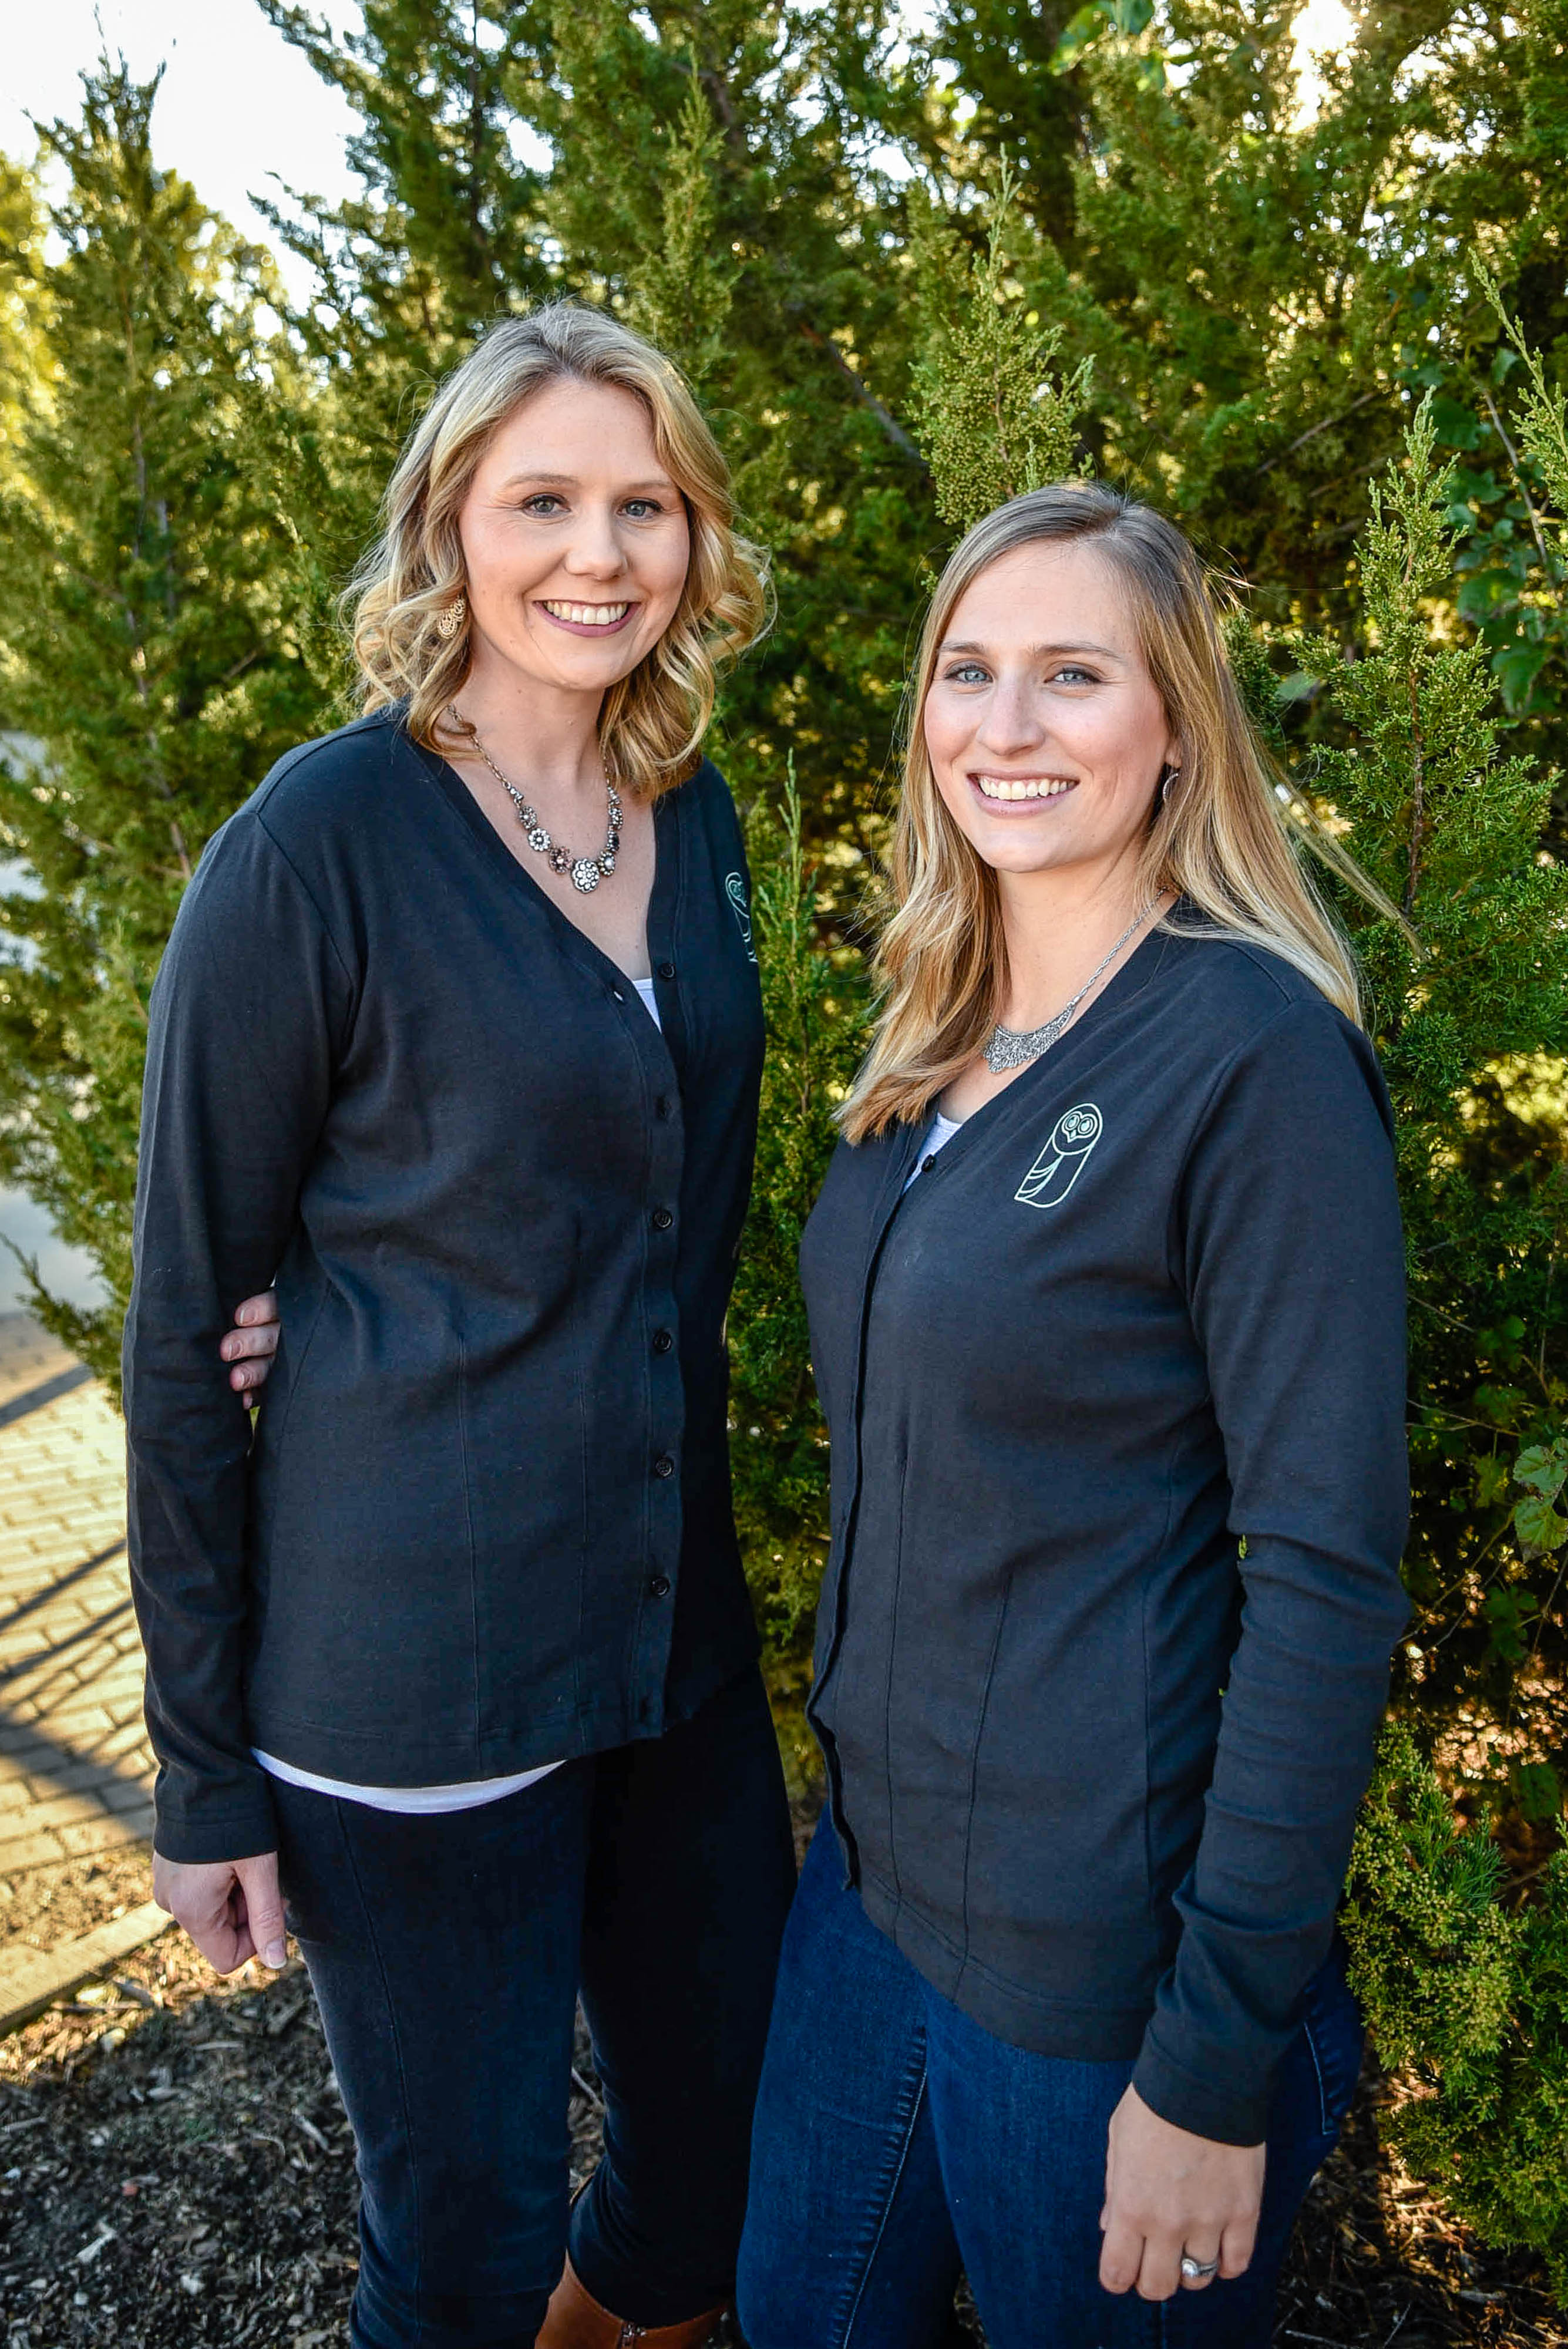 Laura Early & Diana Jaquith, WISE Co-Founders